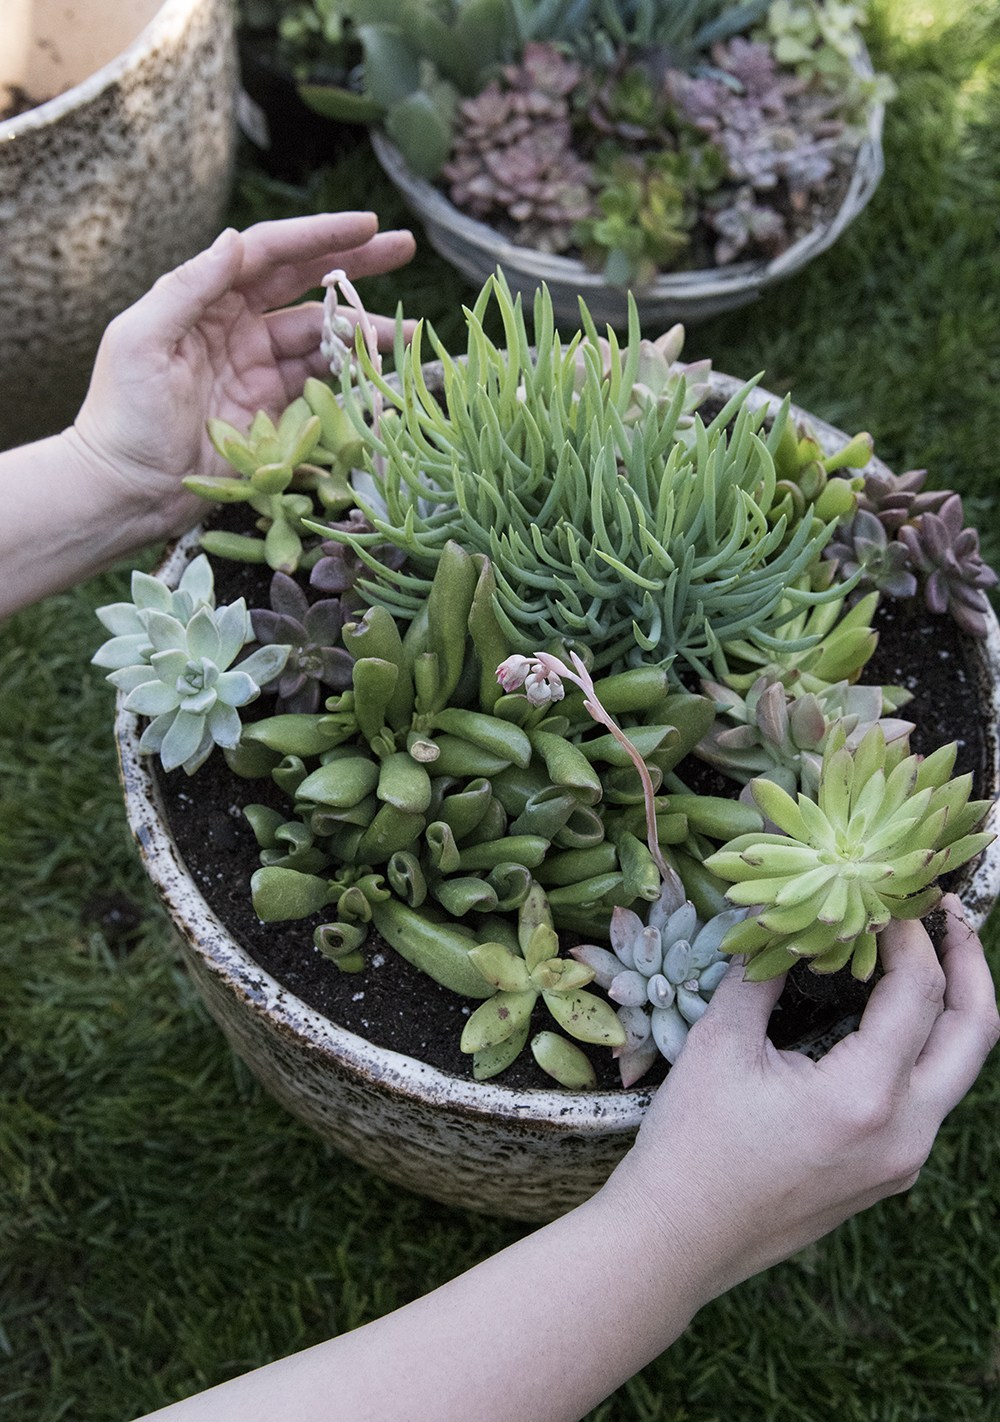 10 Posts for Those Who Love Plants & Gardening - roomfortuesday.com